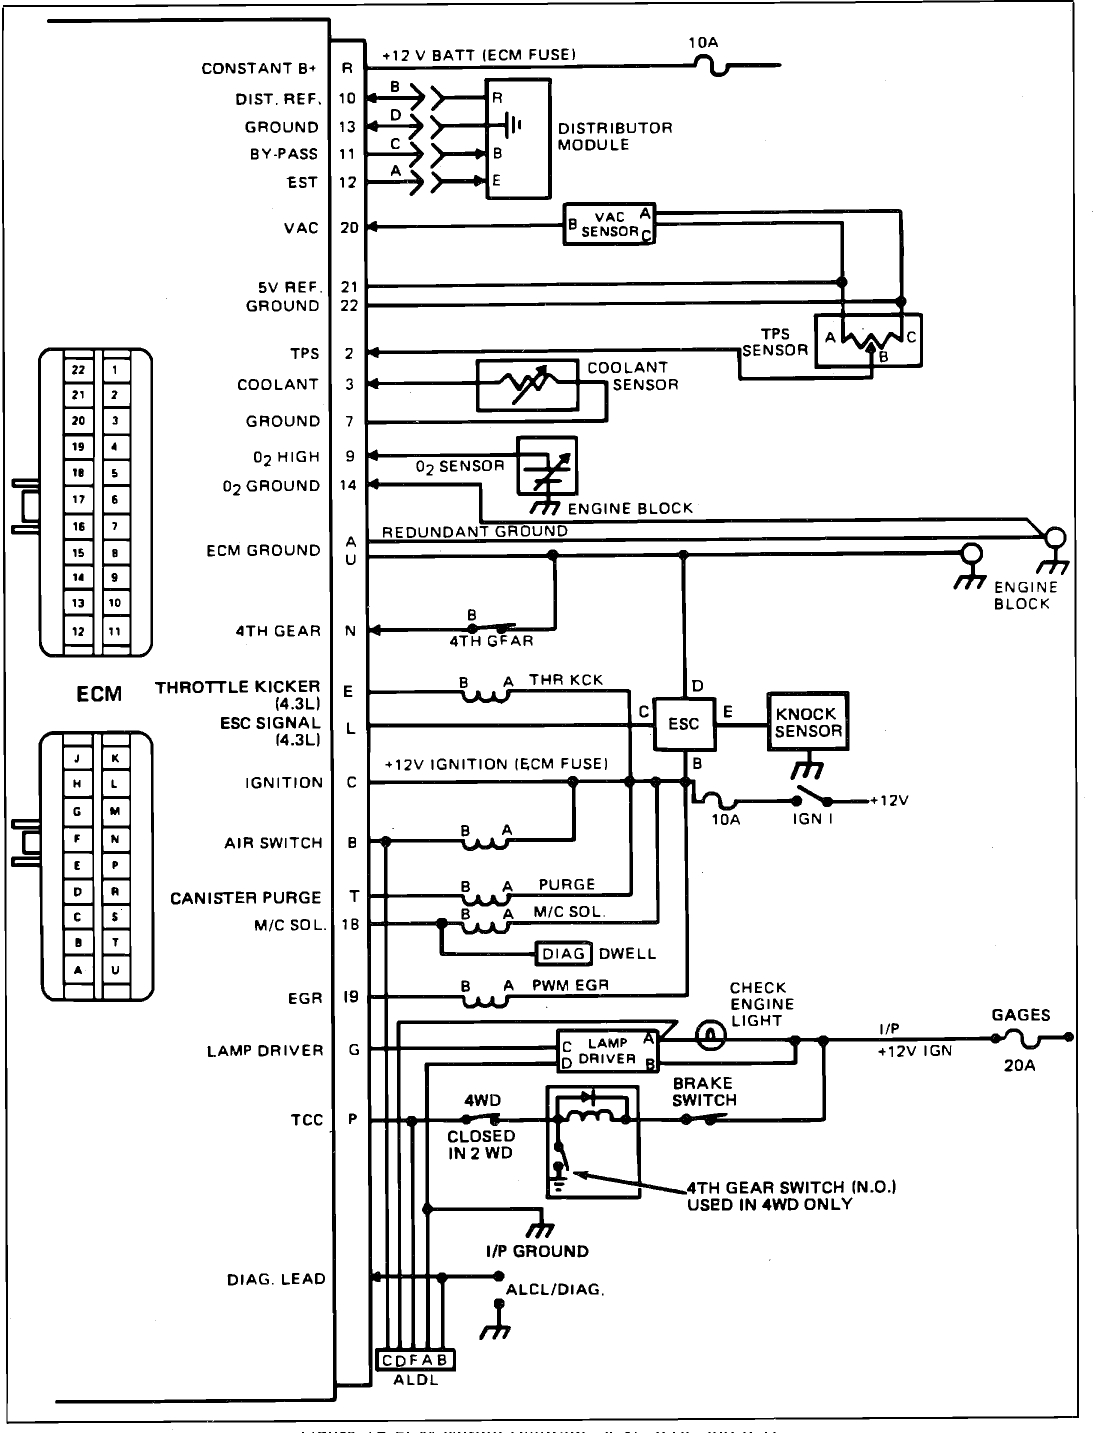 i need a fuse box diagram with wiring colors 1991 chevy g20 fuse box 1991 chevy 1500 fuse box diagram